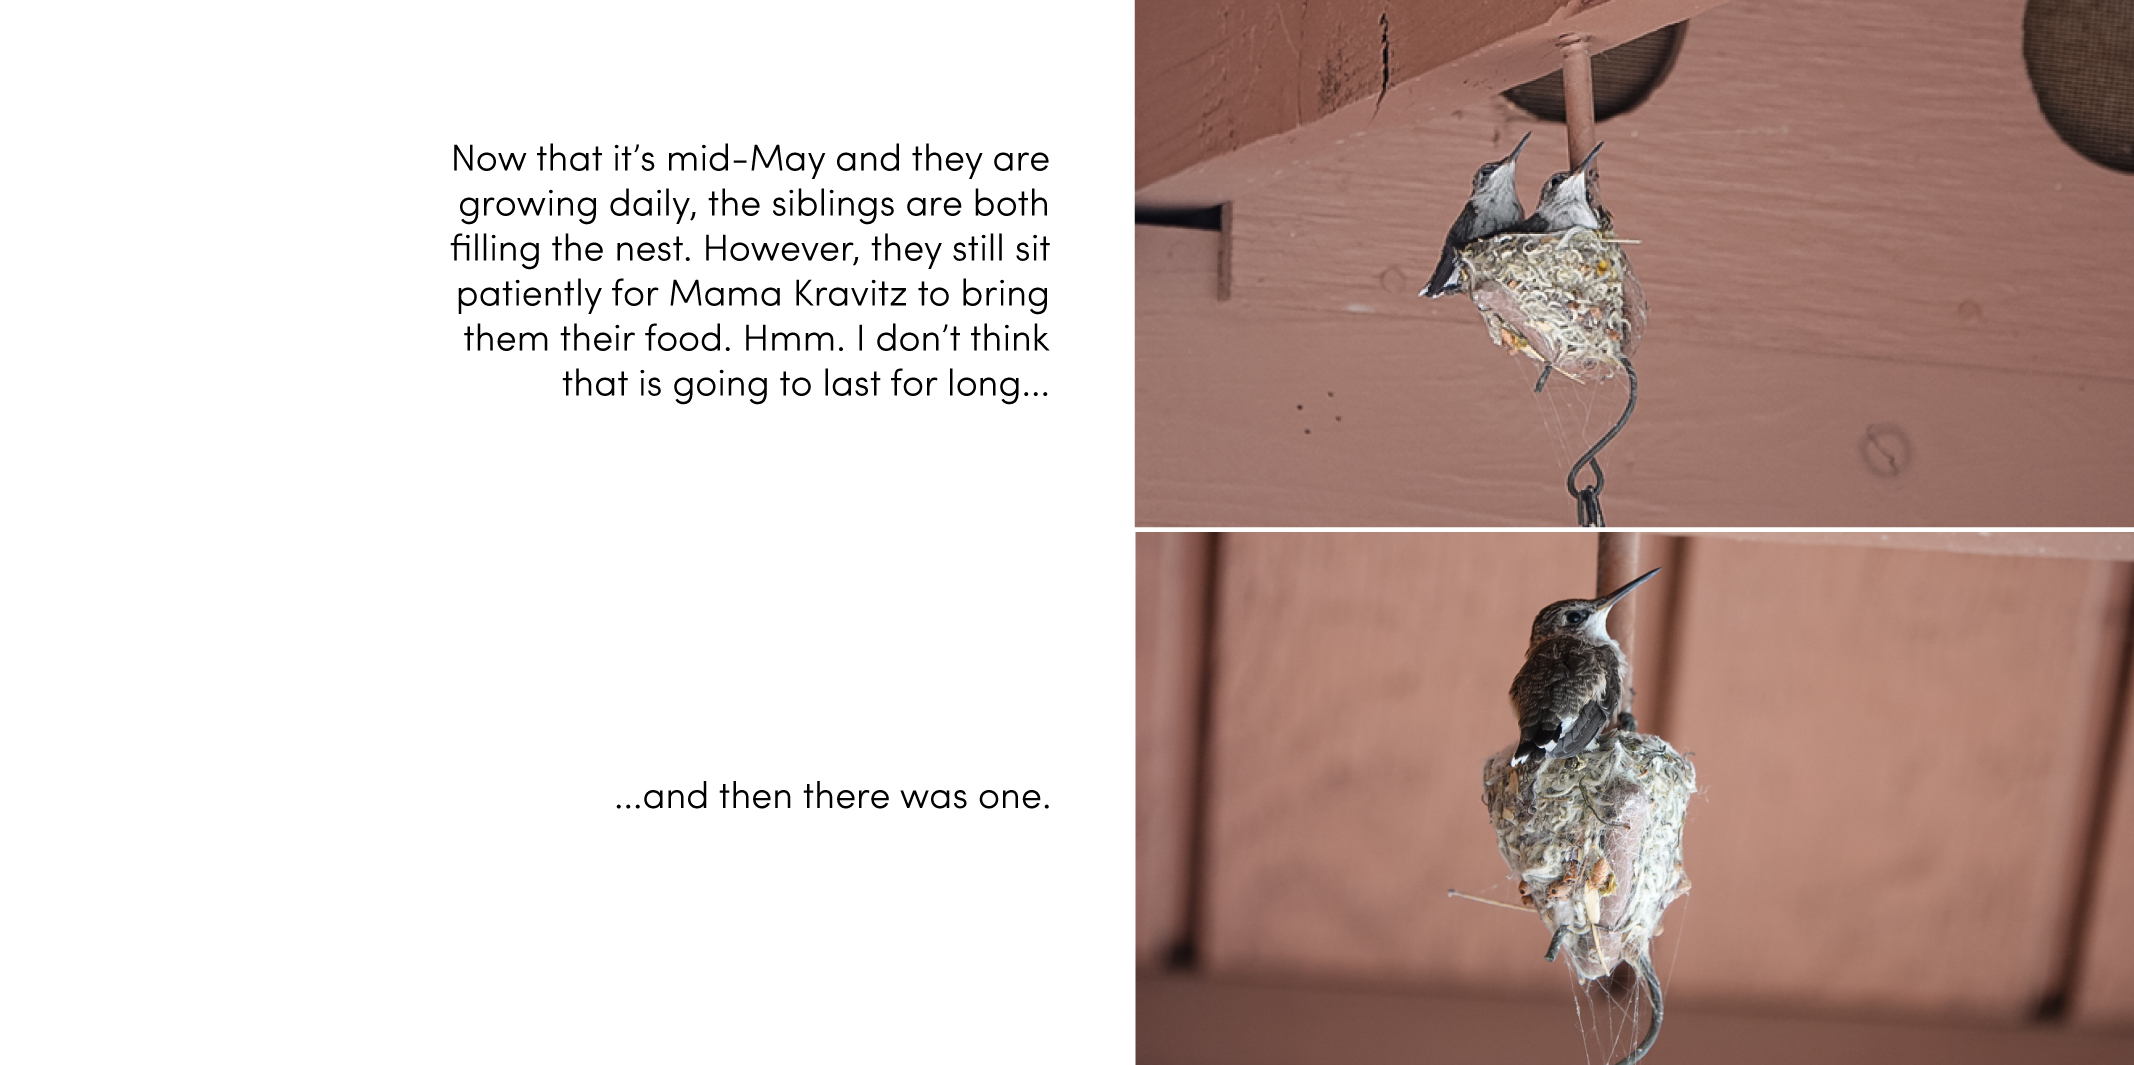 Now that it's mid-May and they are growing daily, the siblings are both filling the nest. However, they still sit patiently for Mama Kravitz to bring them their food. Hmm. I don't think that is going to last for long... and then there was one. (First photo shows both chicks in nest; second photo shows one.)